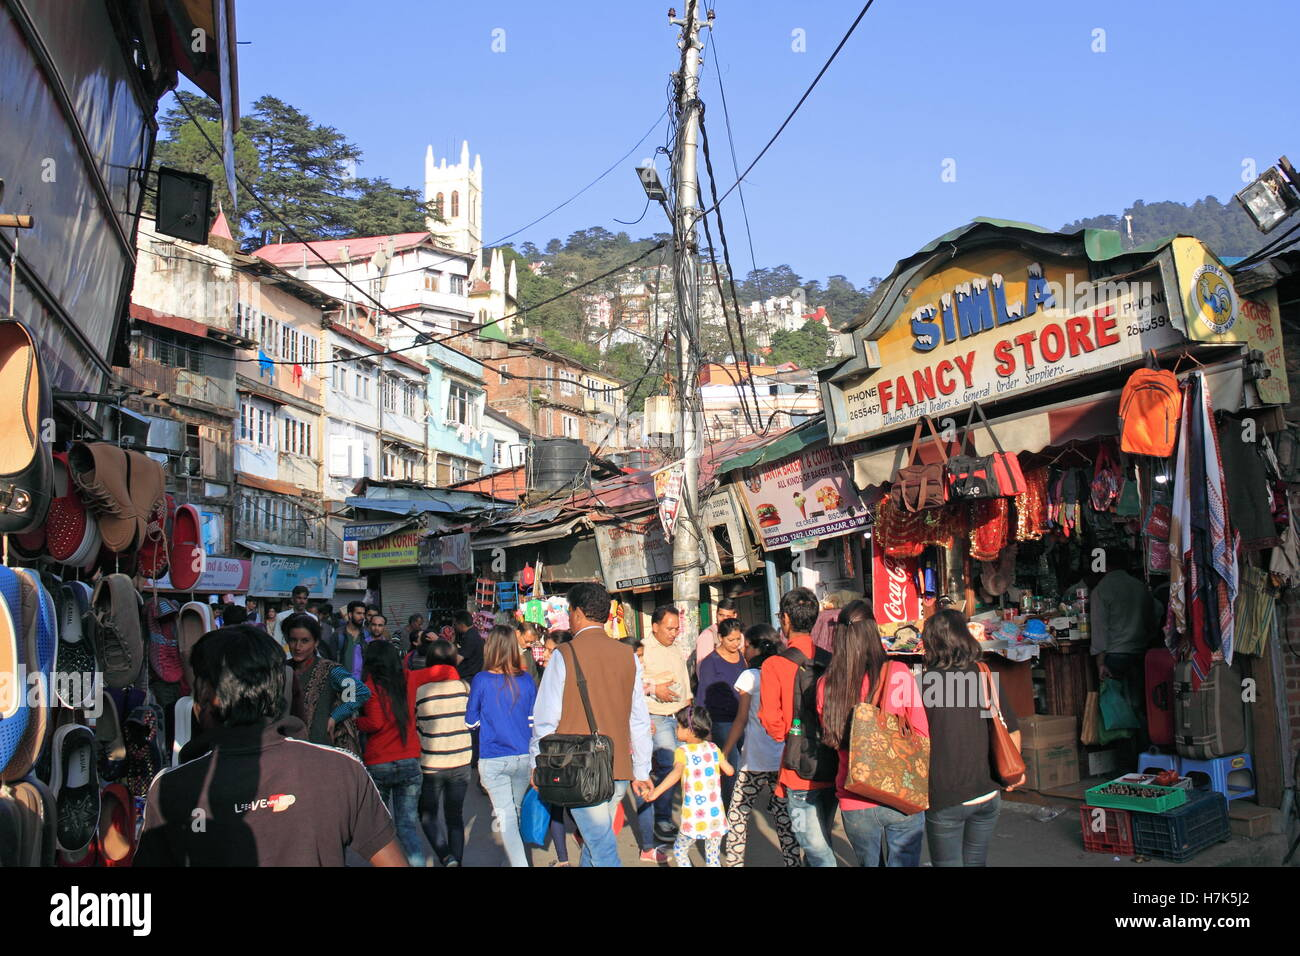 Lower Bazar, Shimla, Himachal Pradesh, India, Indian subcontinent, South Asia - Stock Image